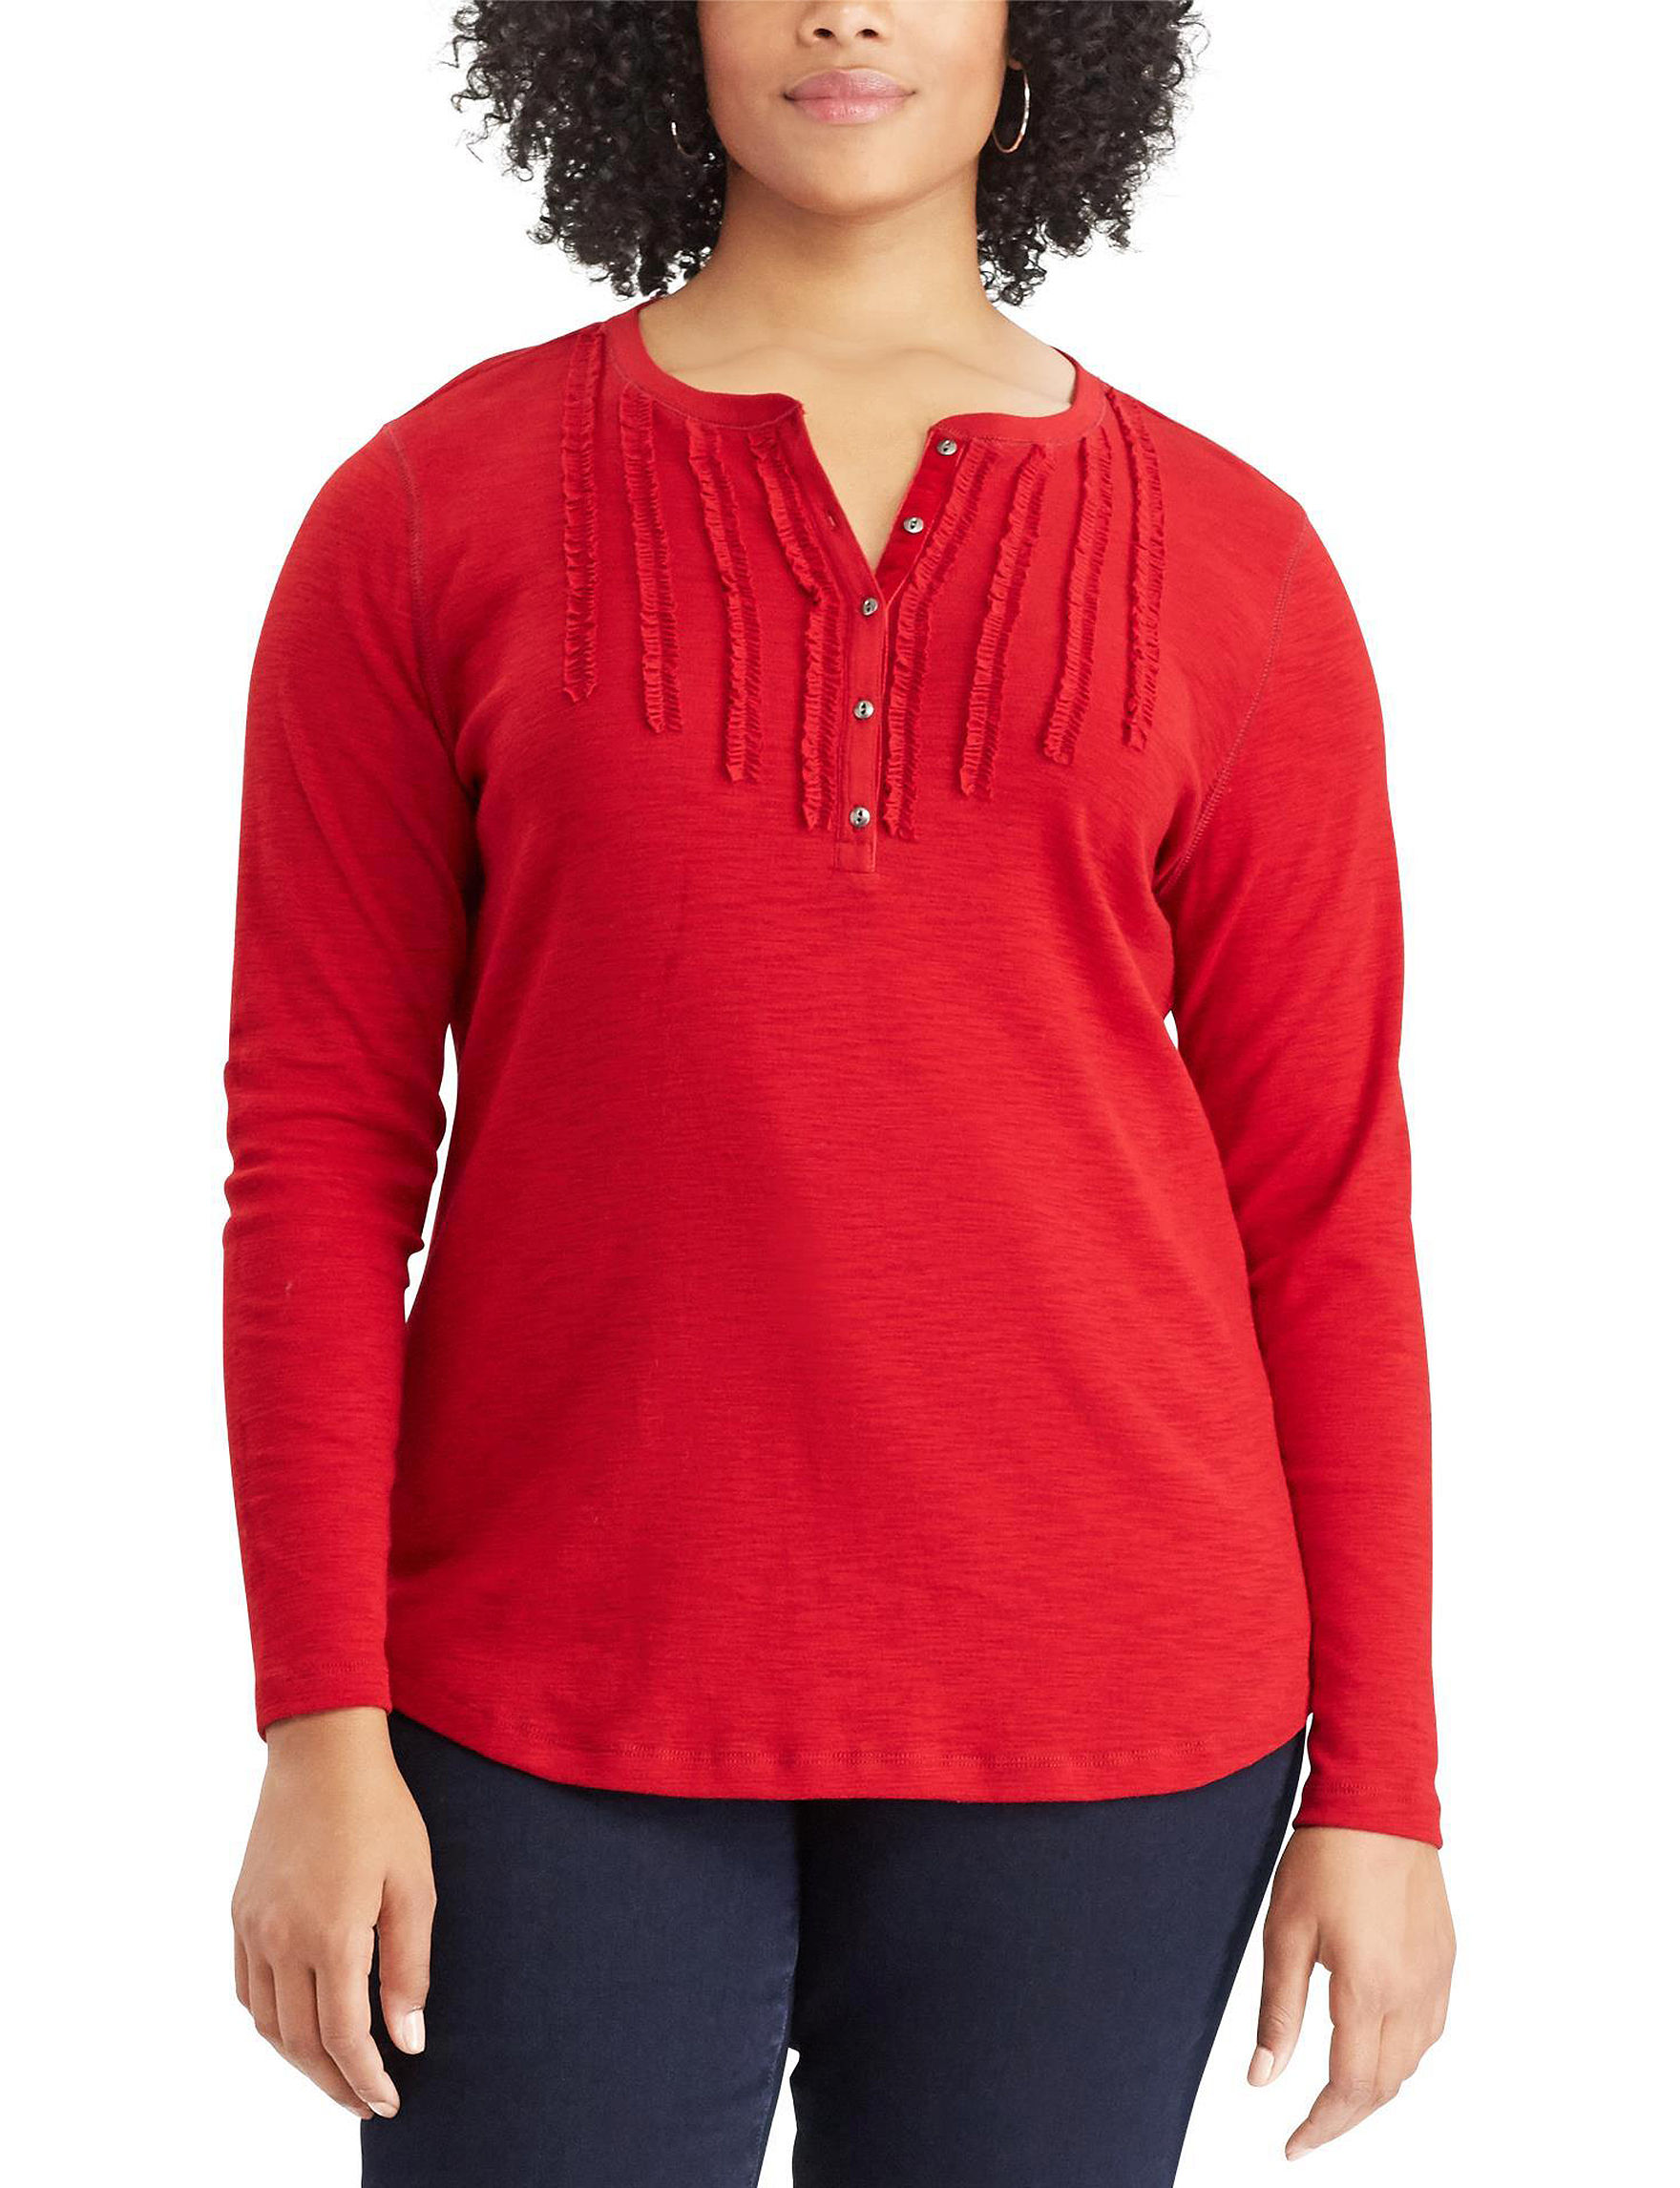 Chaps Red Shirts & Blouses